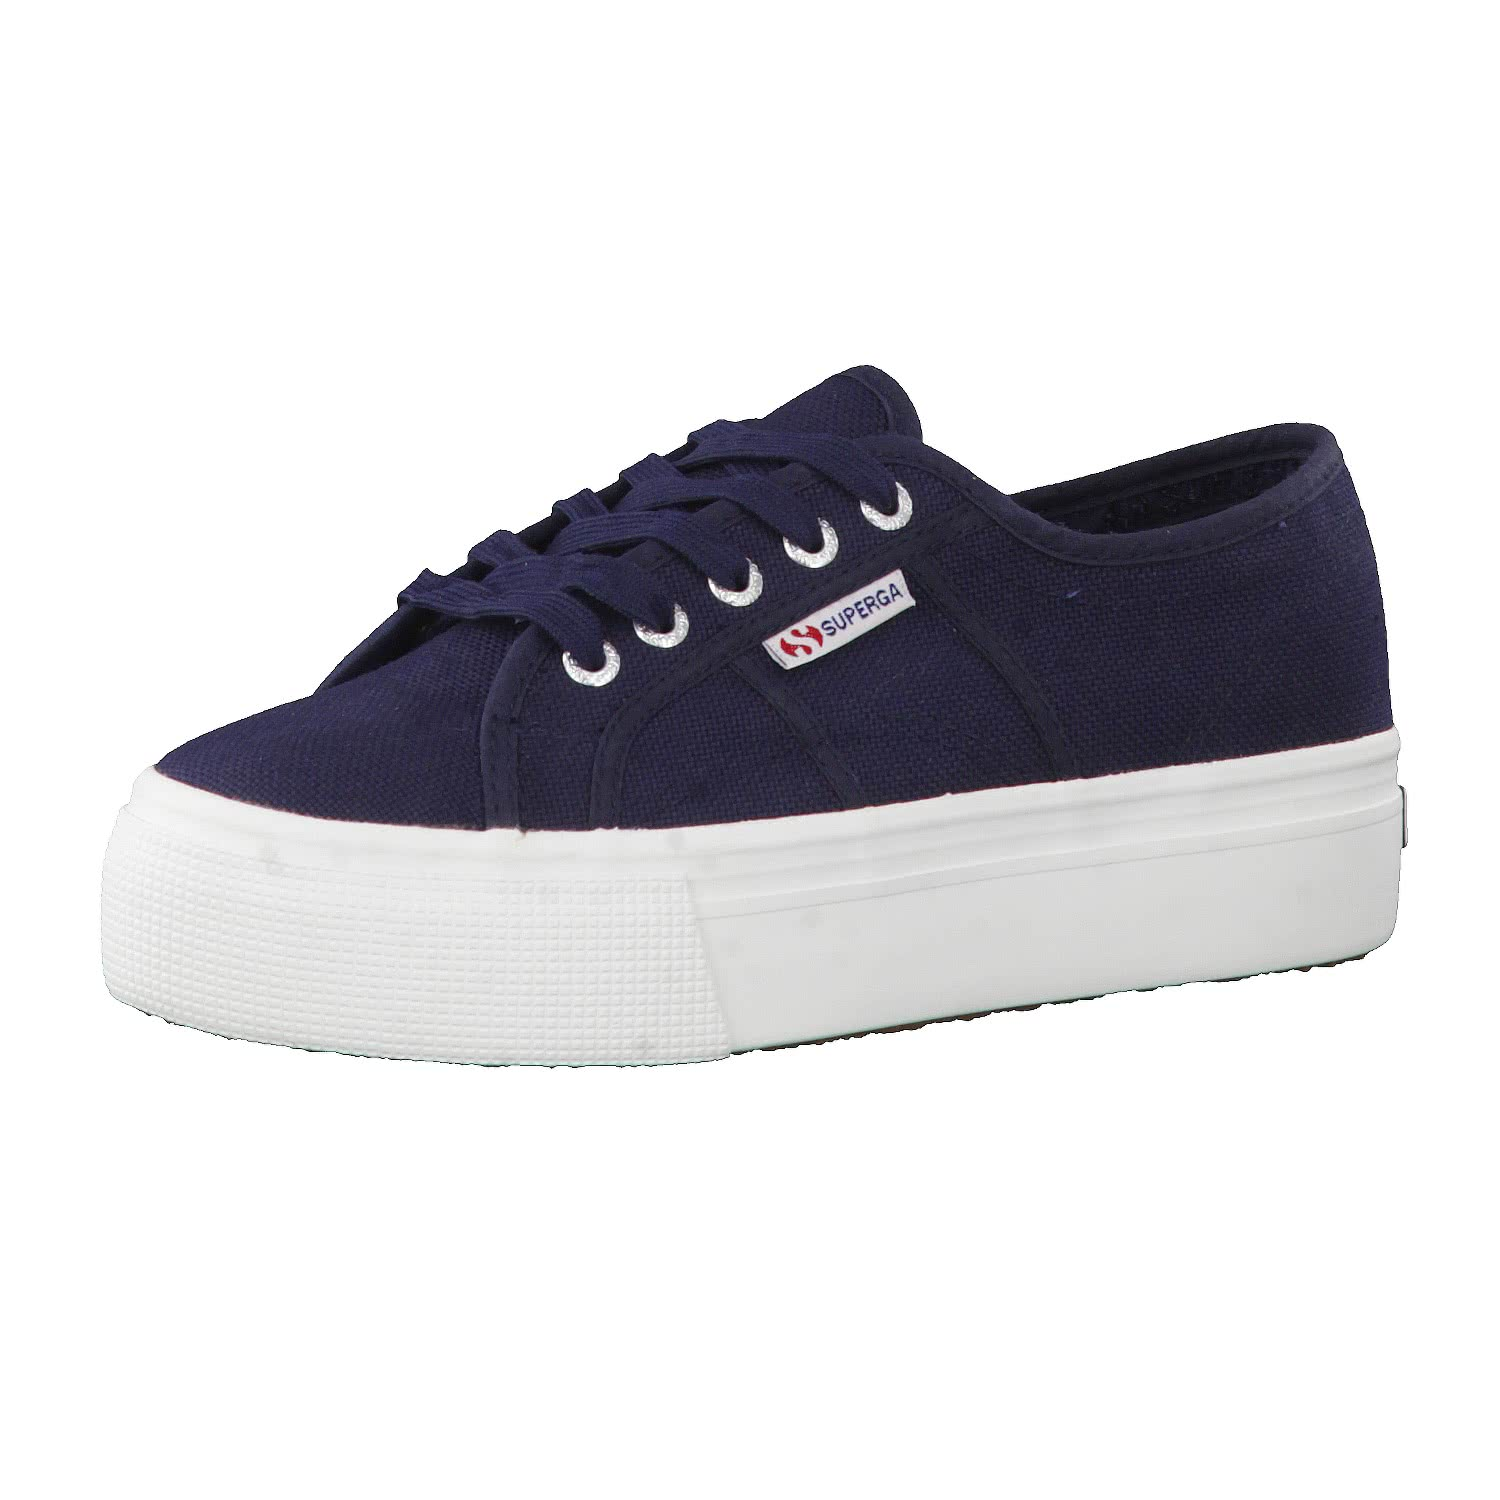 superga damen sneaker 2790 acotw linea up and down s0001l0 f43 37 navy fwhite 37. Black Bedroom Furniture Sets. Home Design Ideas